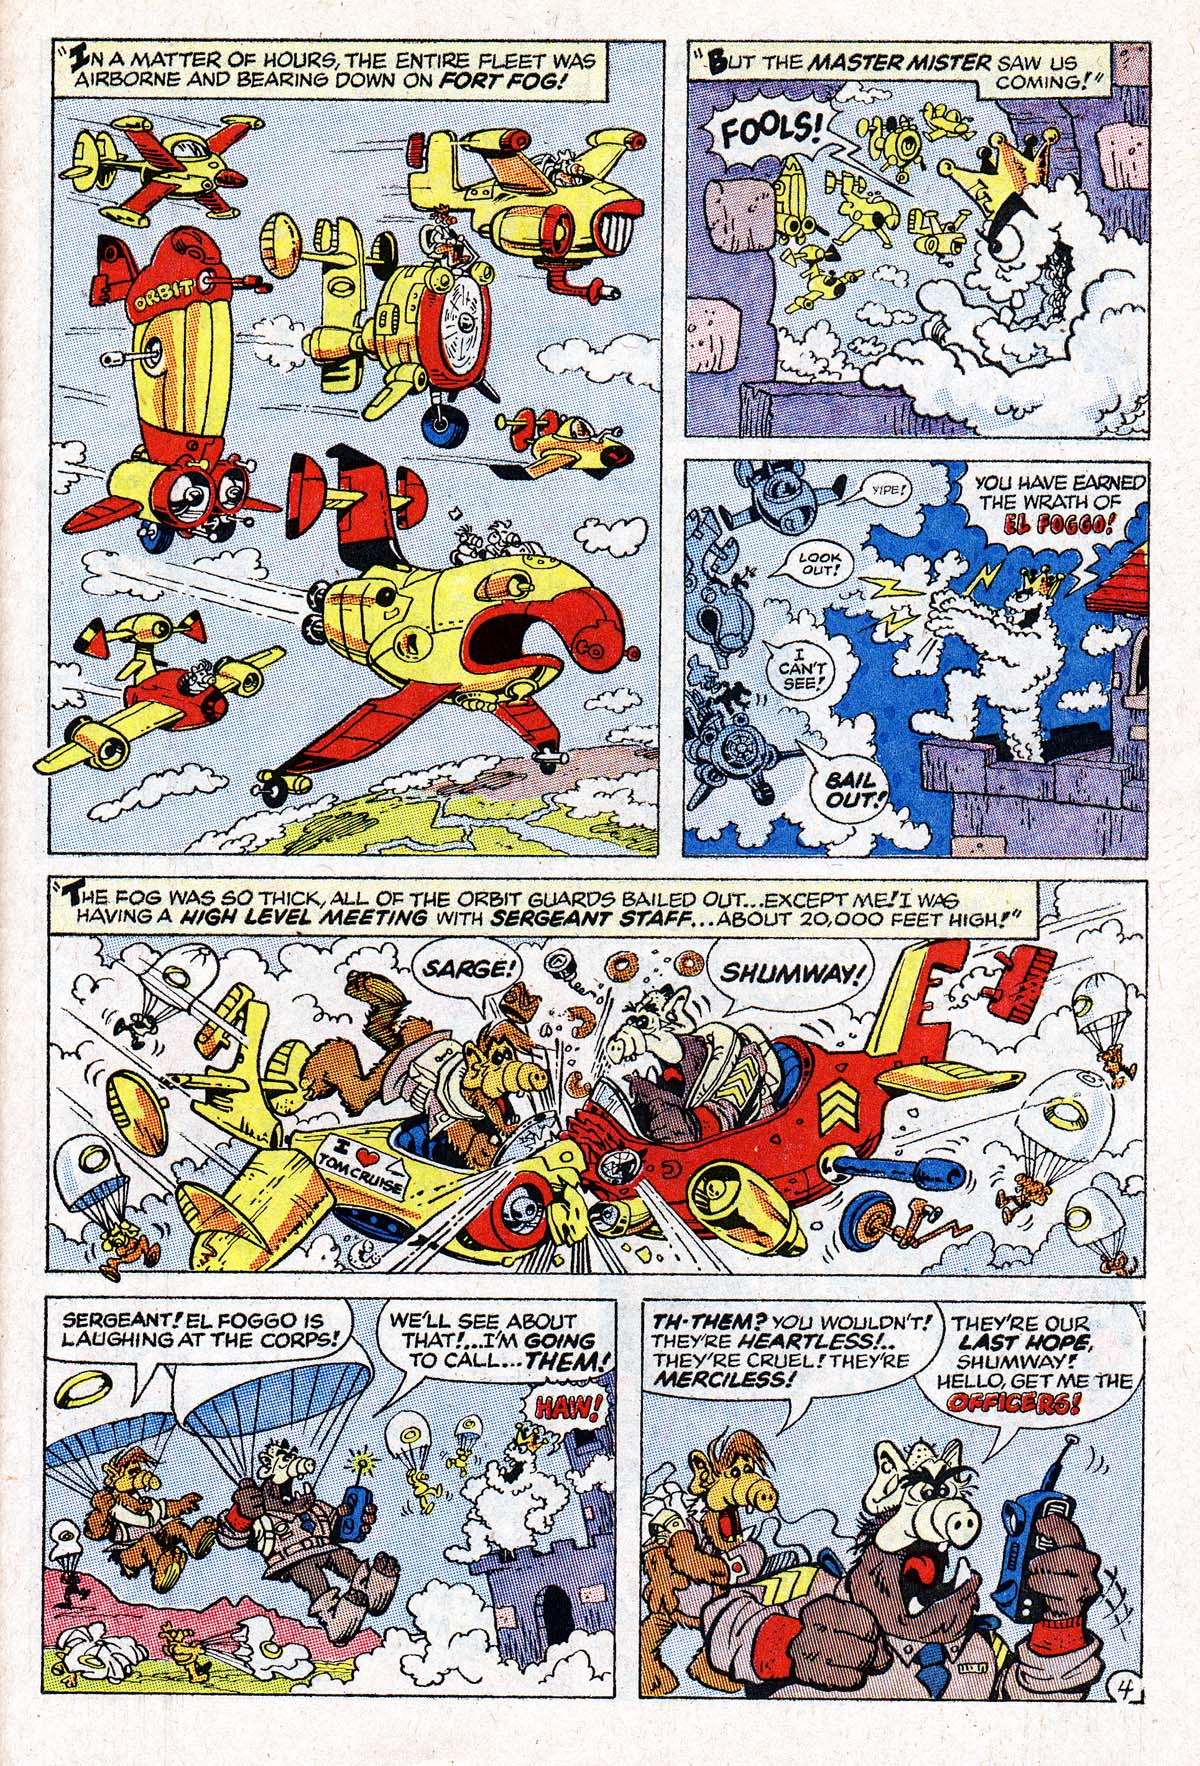 Read online ALF comic -  Issue #1 - 21